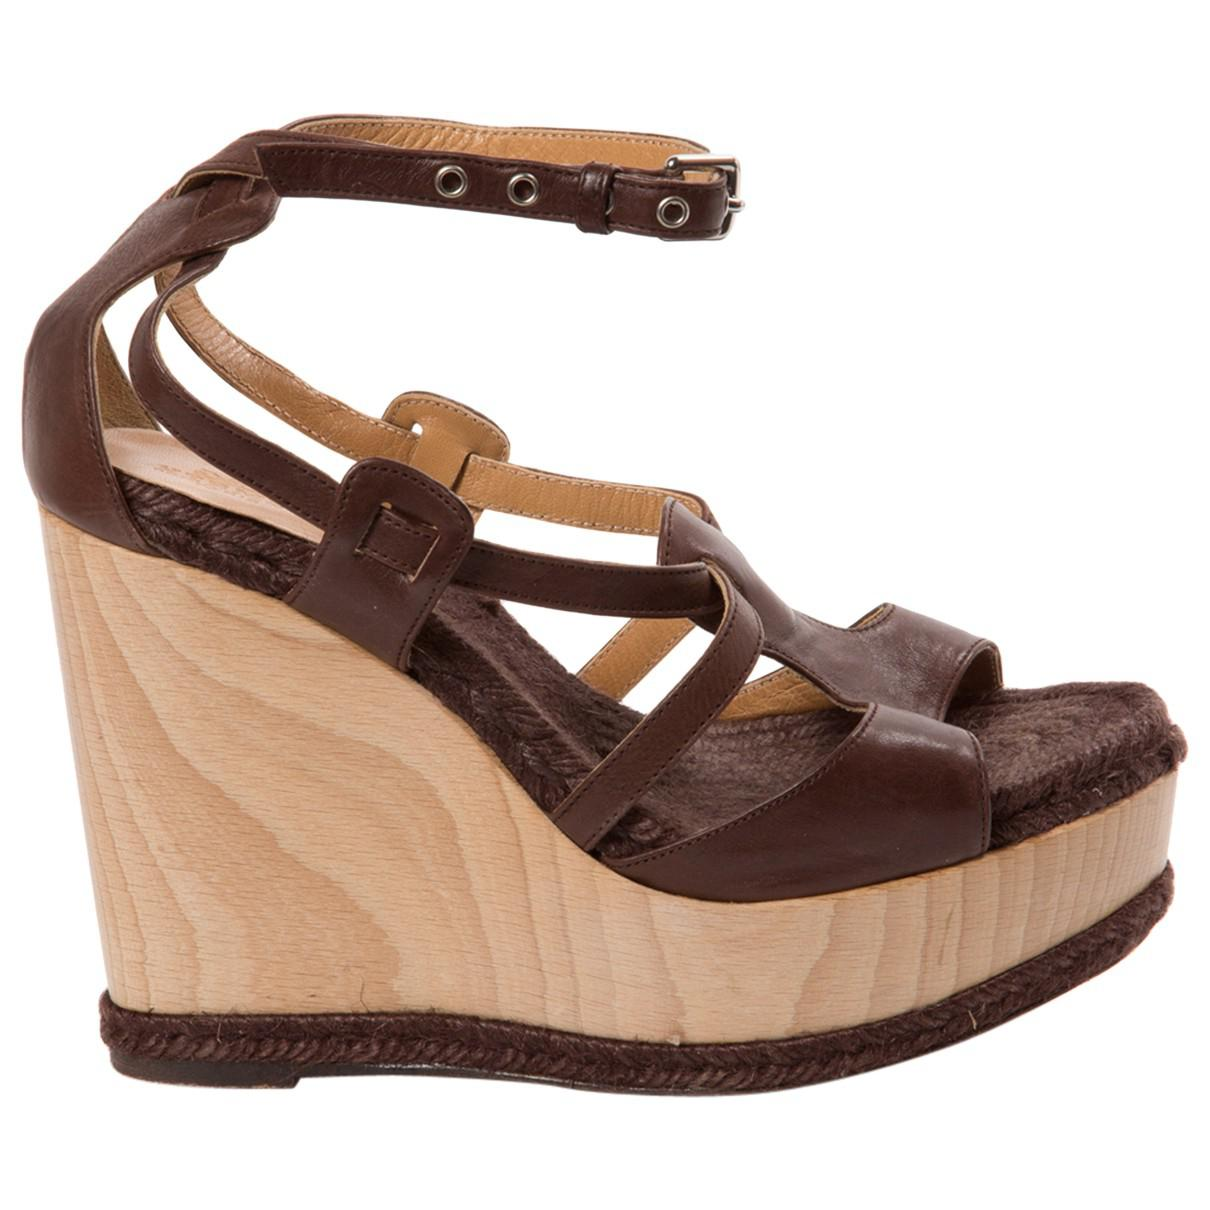 Pre-owned - Leather sandals Herm JSJT7oCRhI